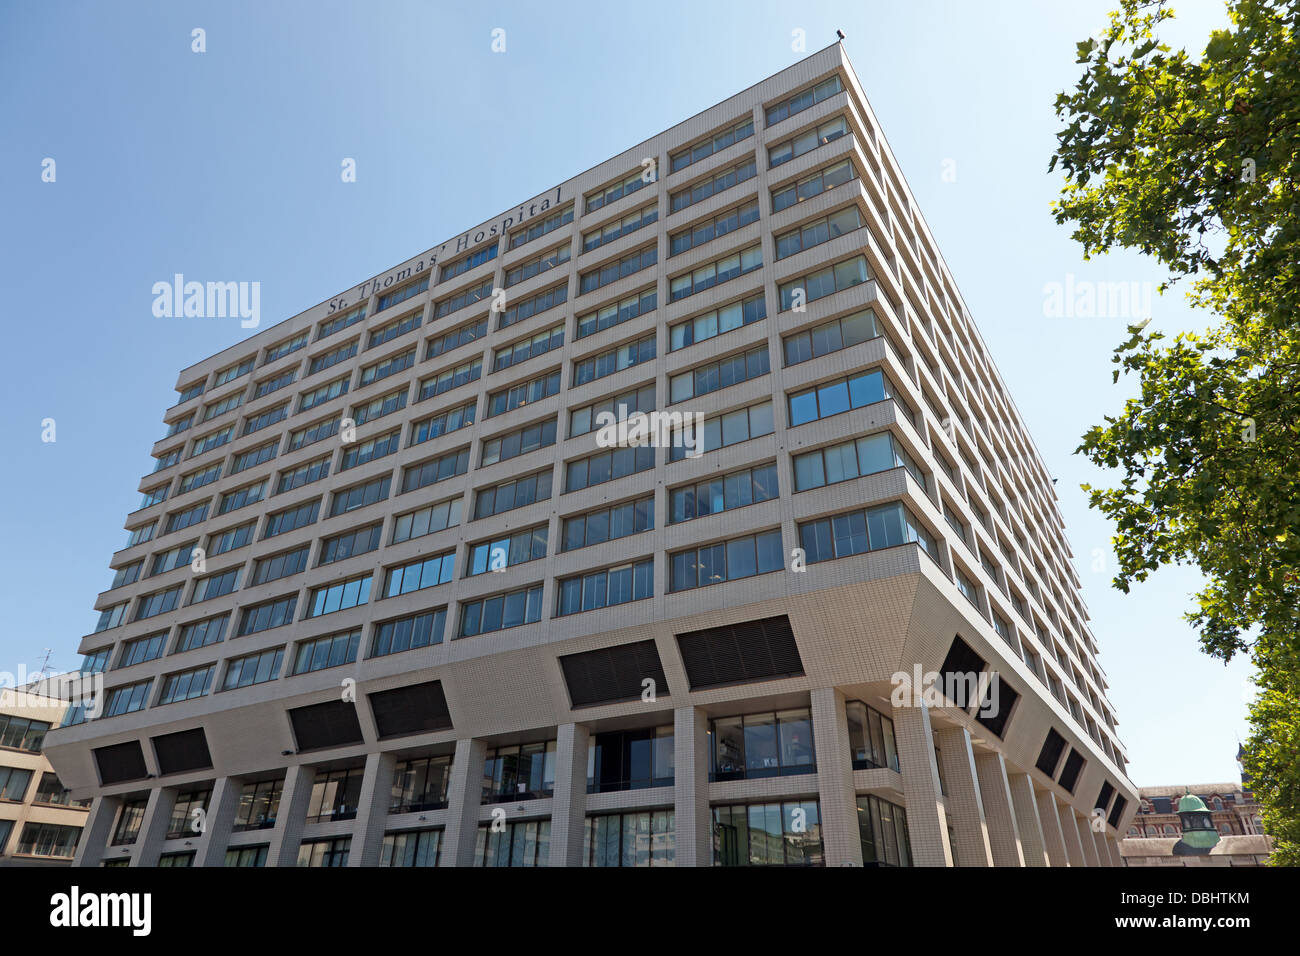 View of St Thomas' Hospital, Lambeth, London. - Stock Image